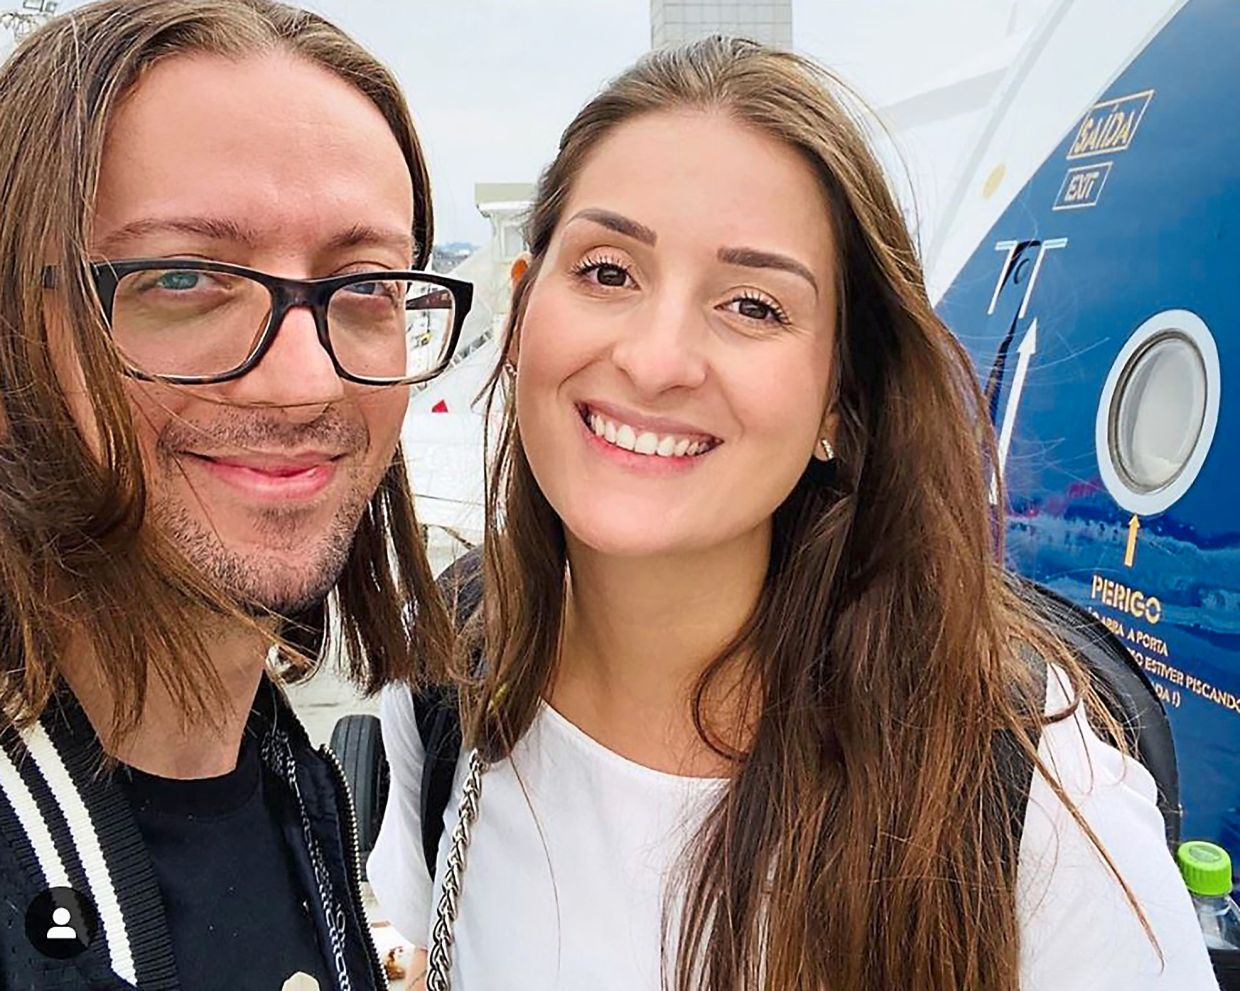 Saldanha is a DJ on the ship while his girlfriend Furlan used to host activities for passengers. This picture was taken in February at the Sao Paulo Airport in Brazil, a few weeks before the couple started their jobs on the ship.  — CAIO SALDANHA